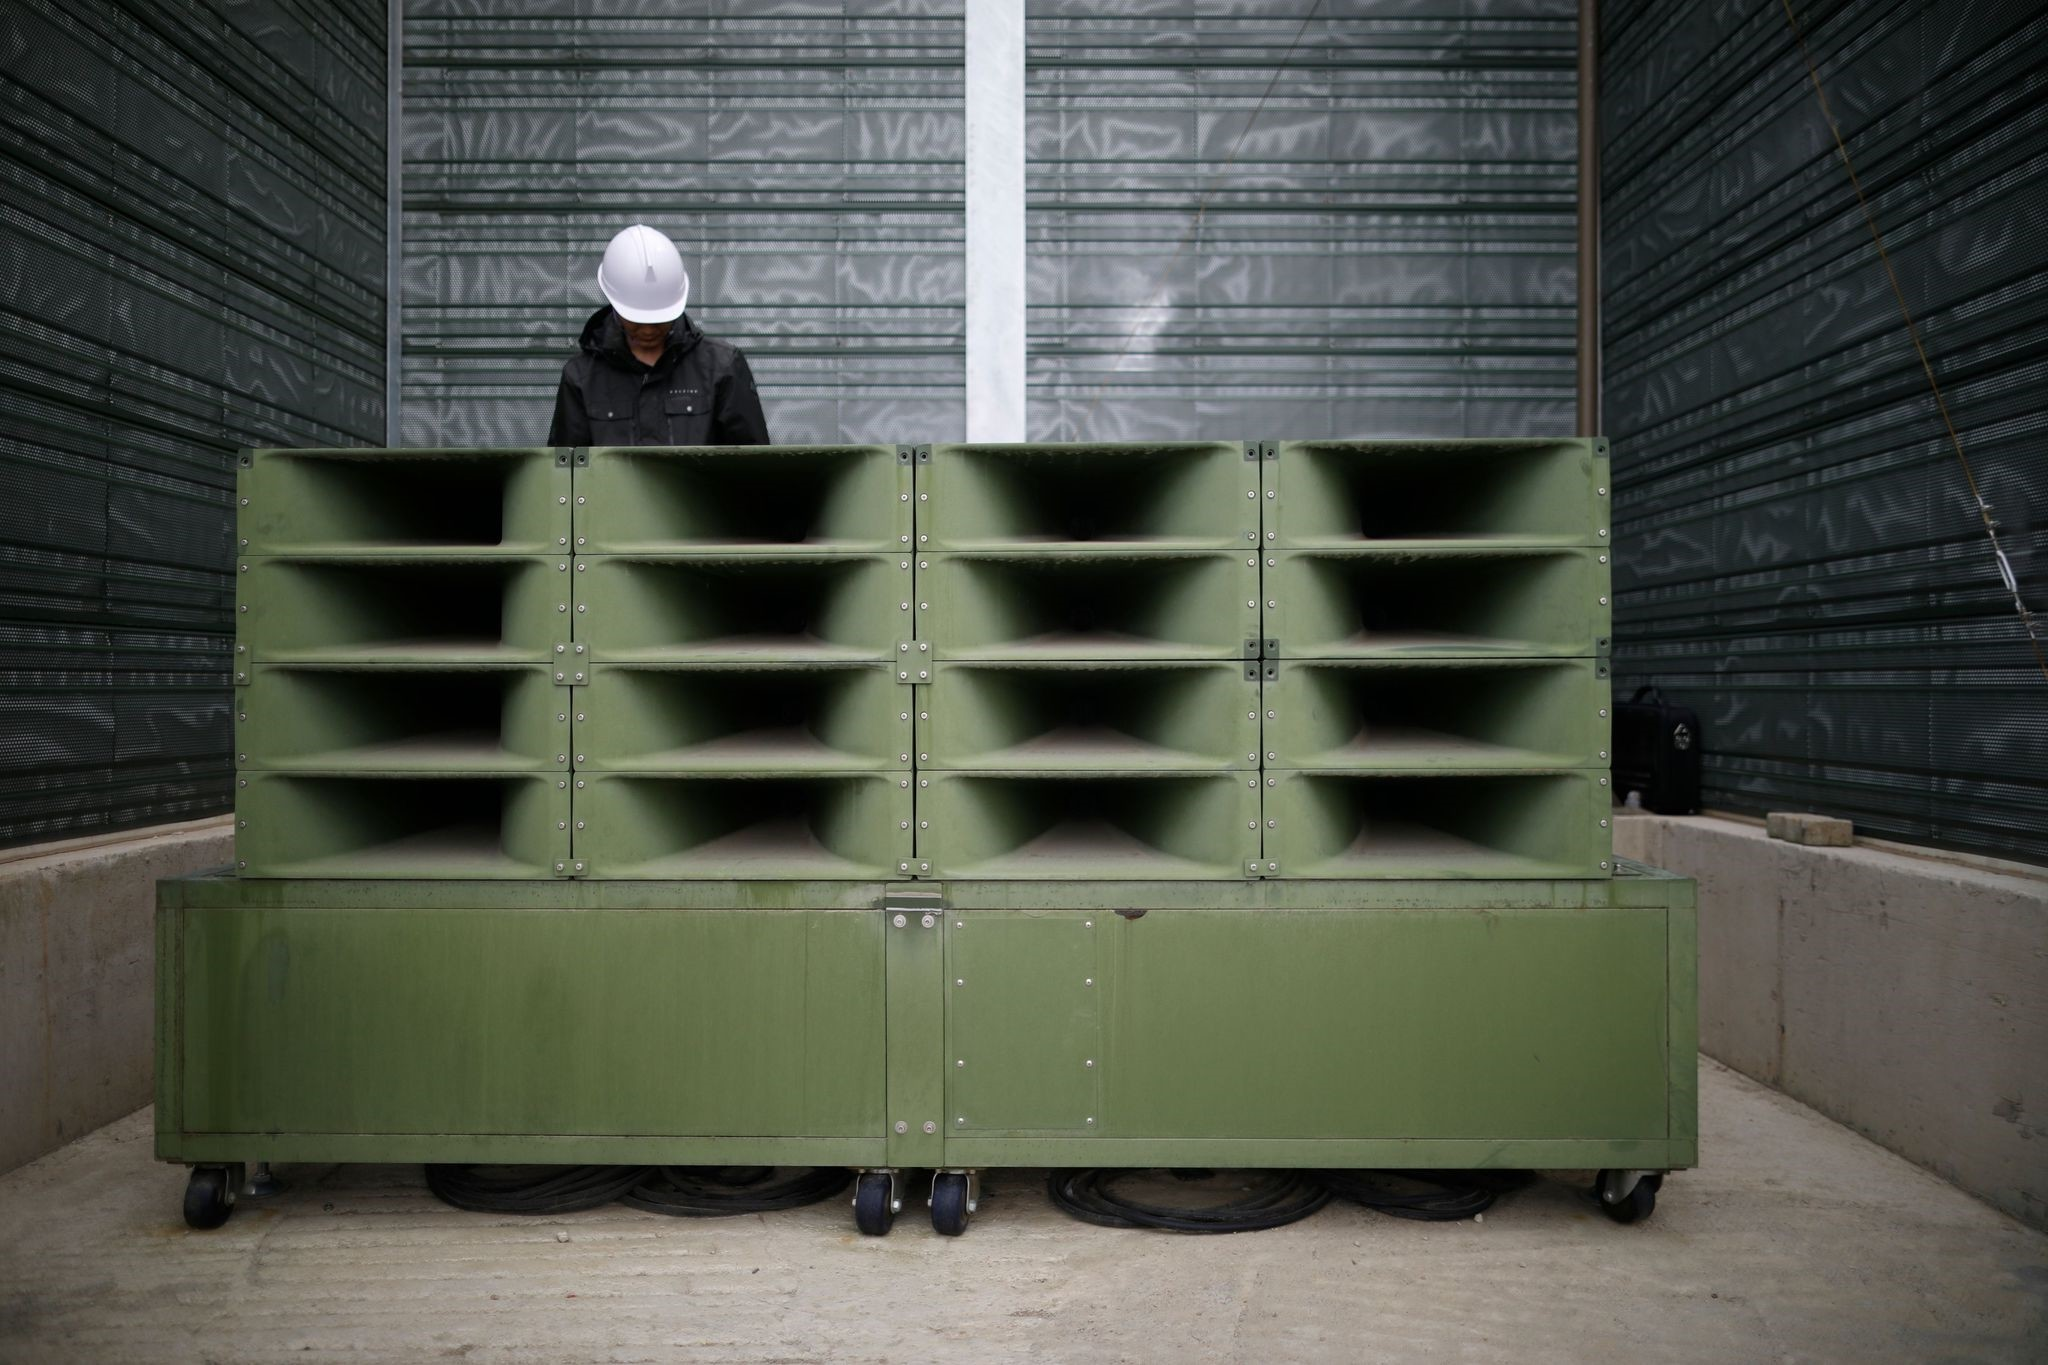 A worker dismantles loudspeakers that were set up for propaganda broadcasts near the demilitarized zone separating the two Koreas in Paju on May 1, 2018. (AFP Photo)